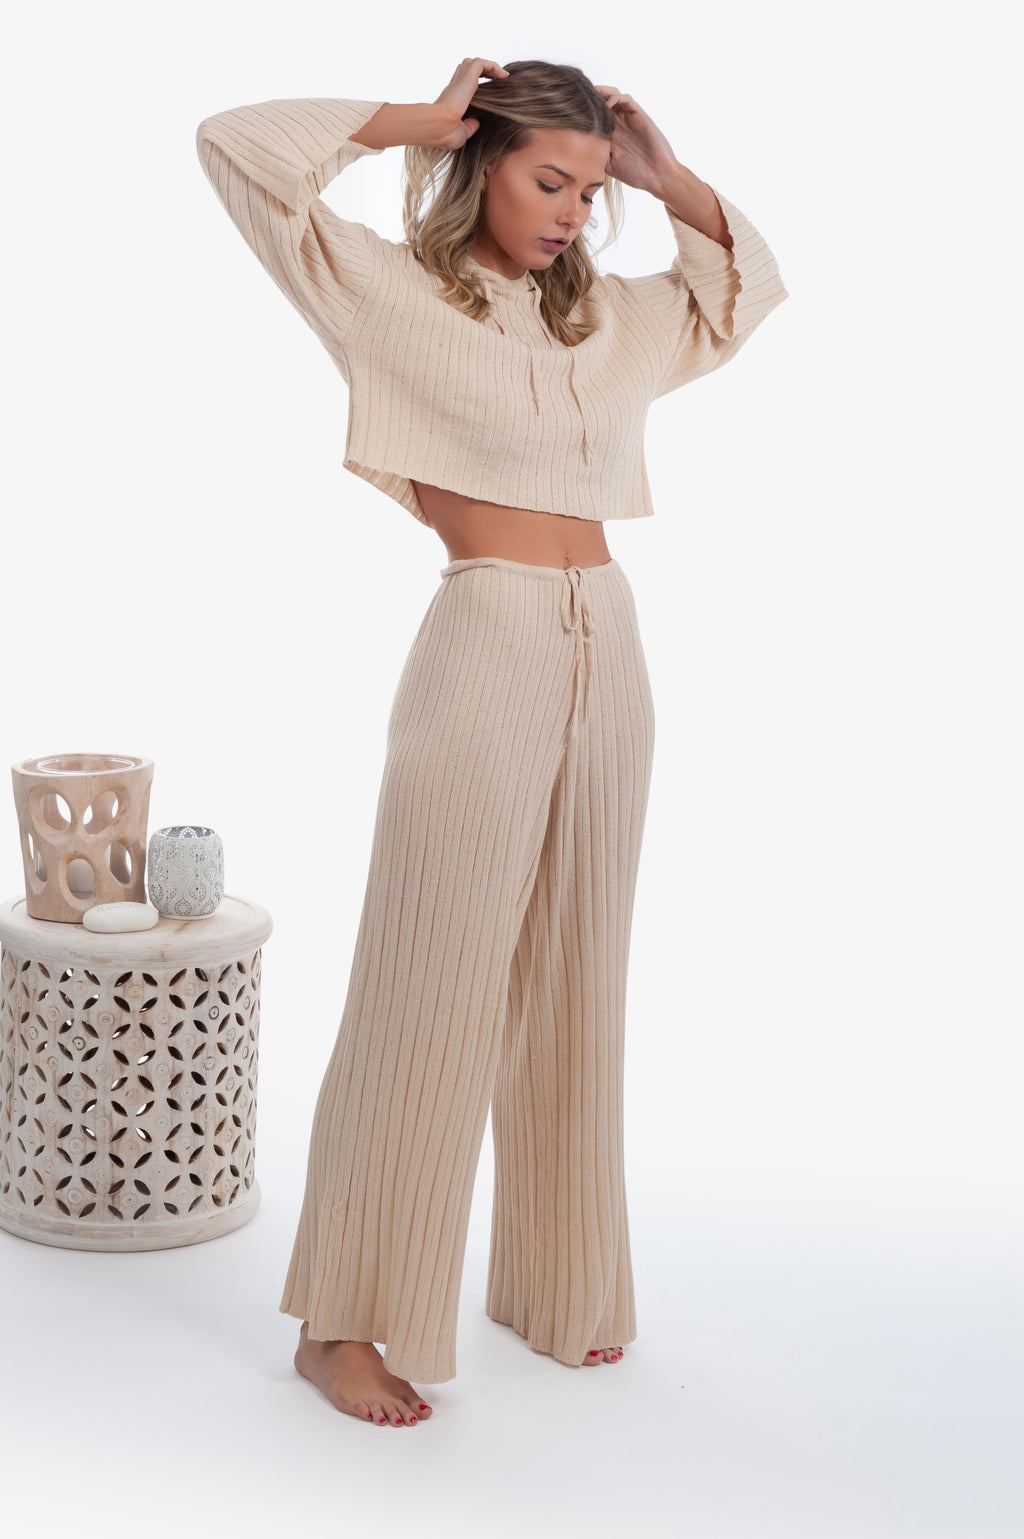 Baha Top & Pants Set